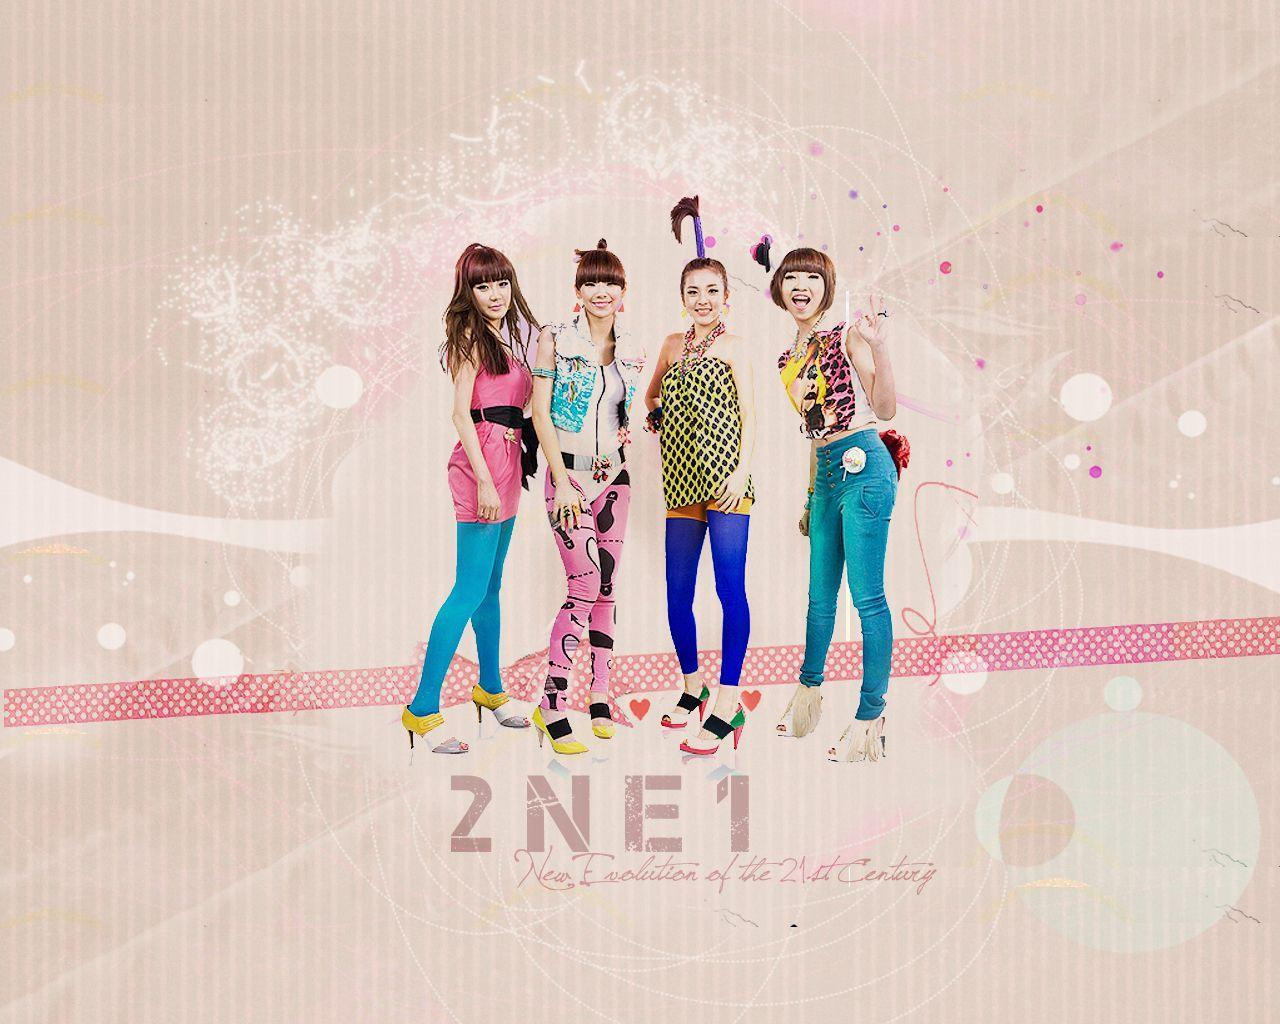 2ne1 korean image wallpa HD wallpapers and backgrounds photos